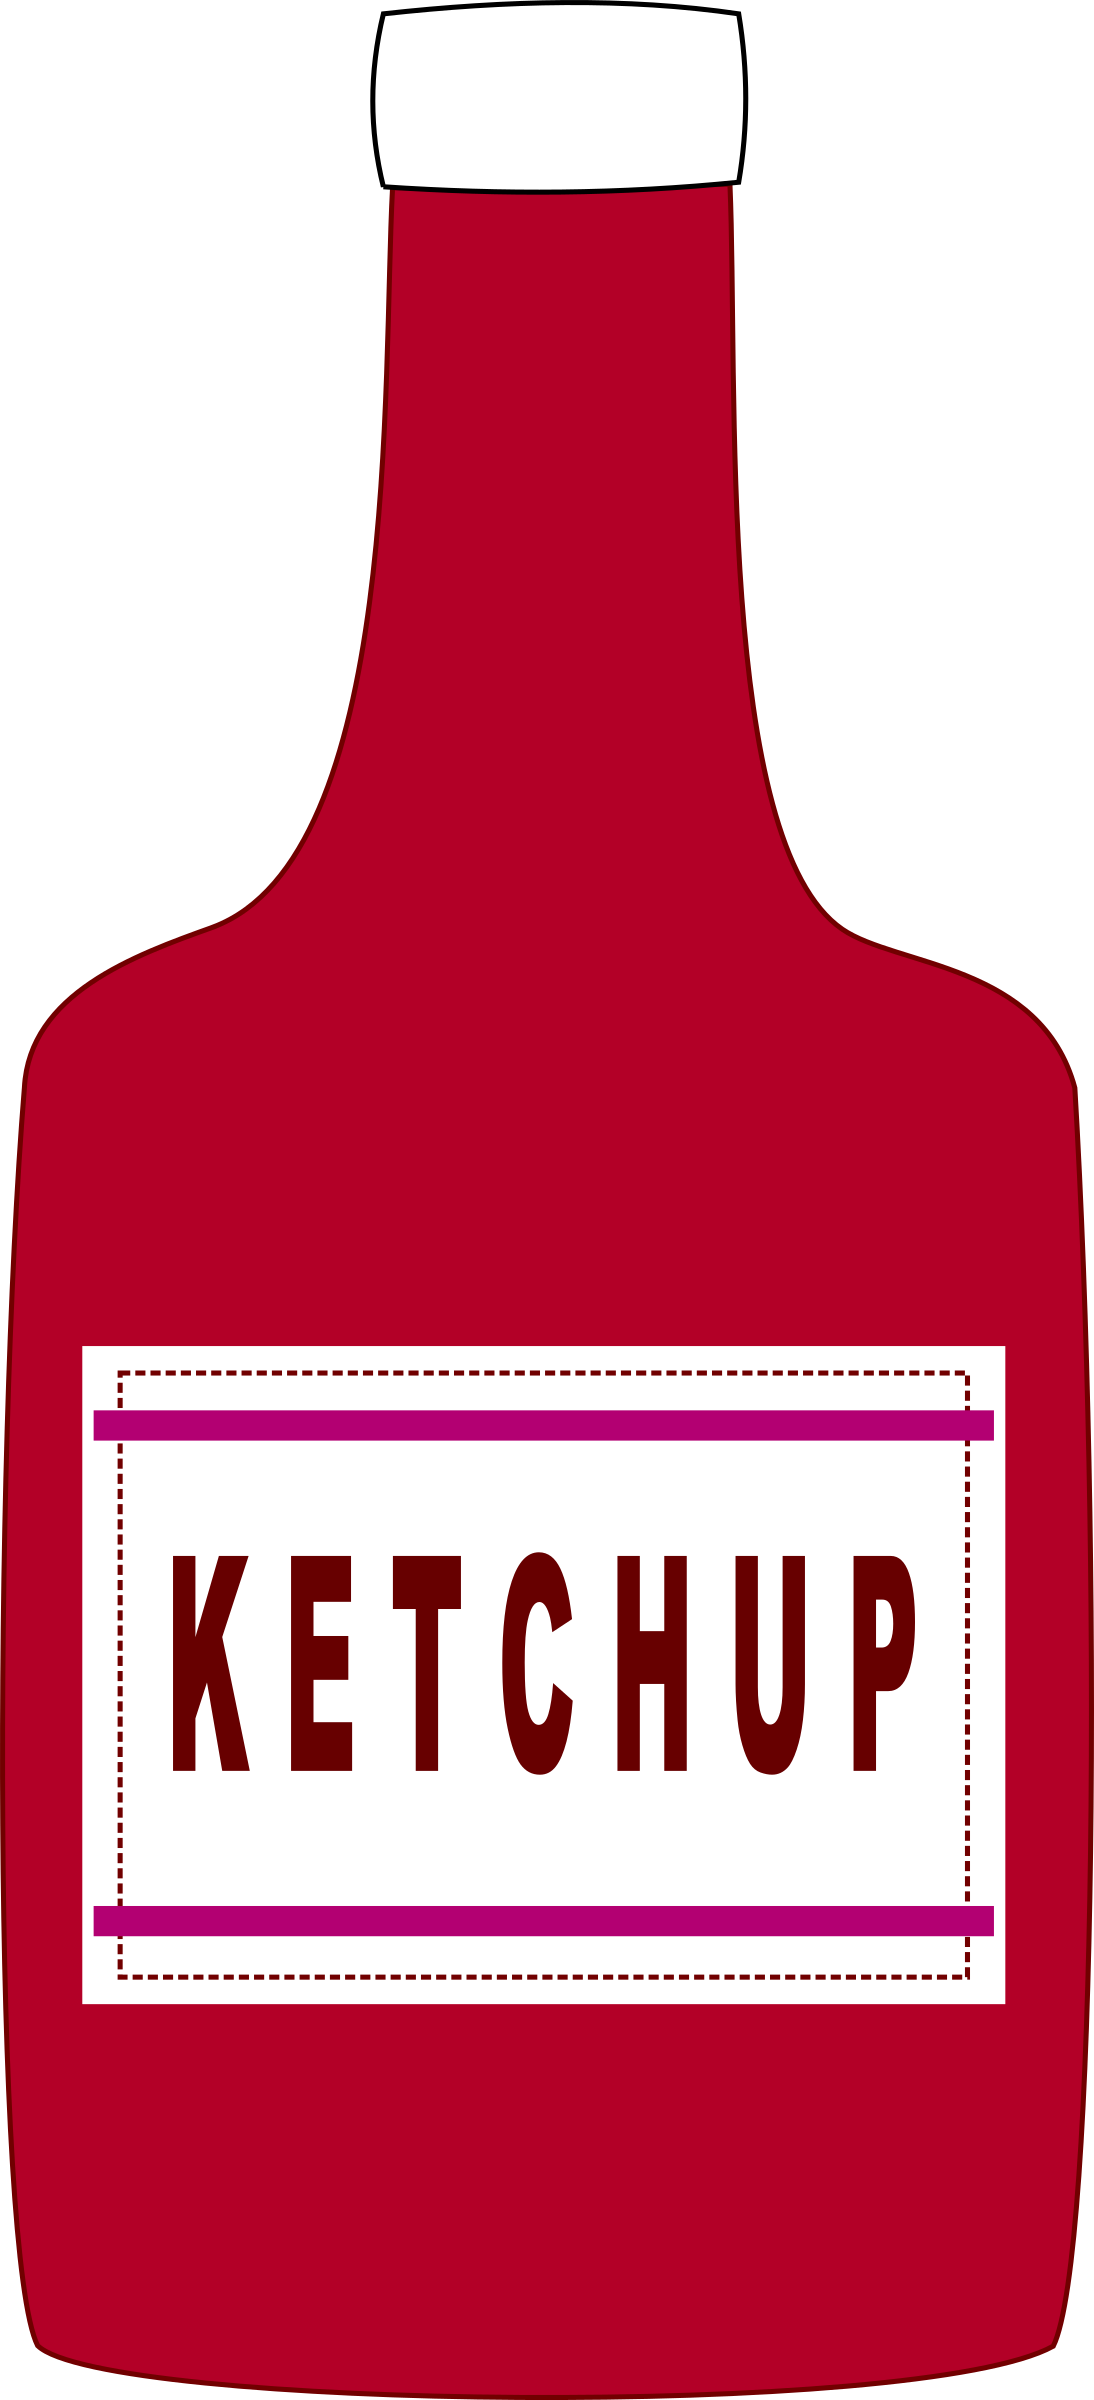 Ketchup bottle by J_Alves